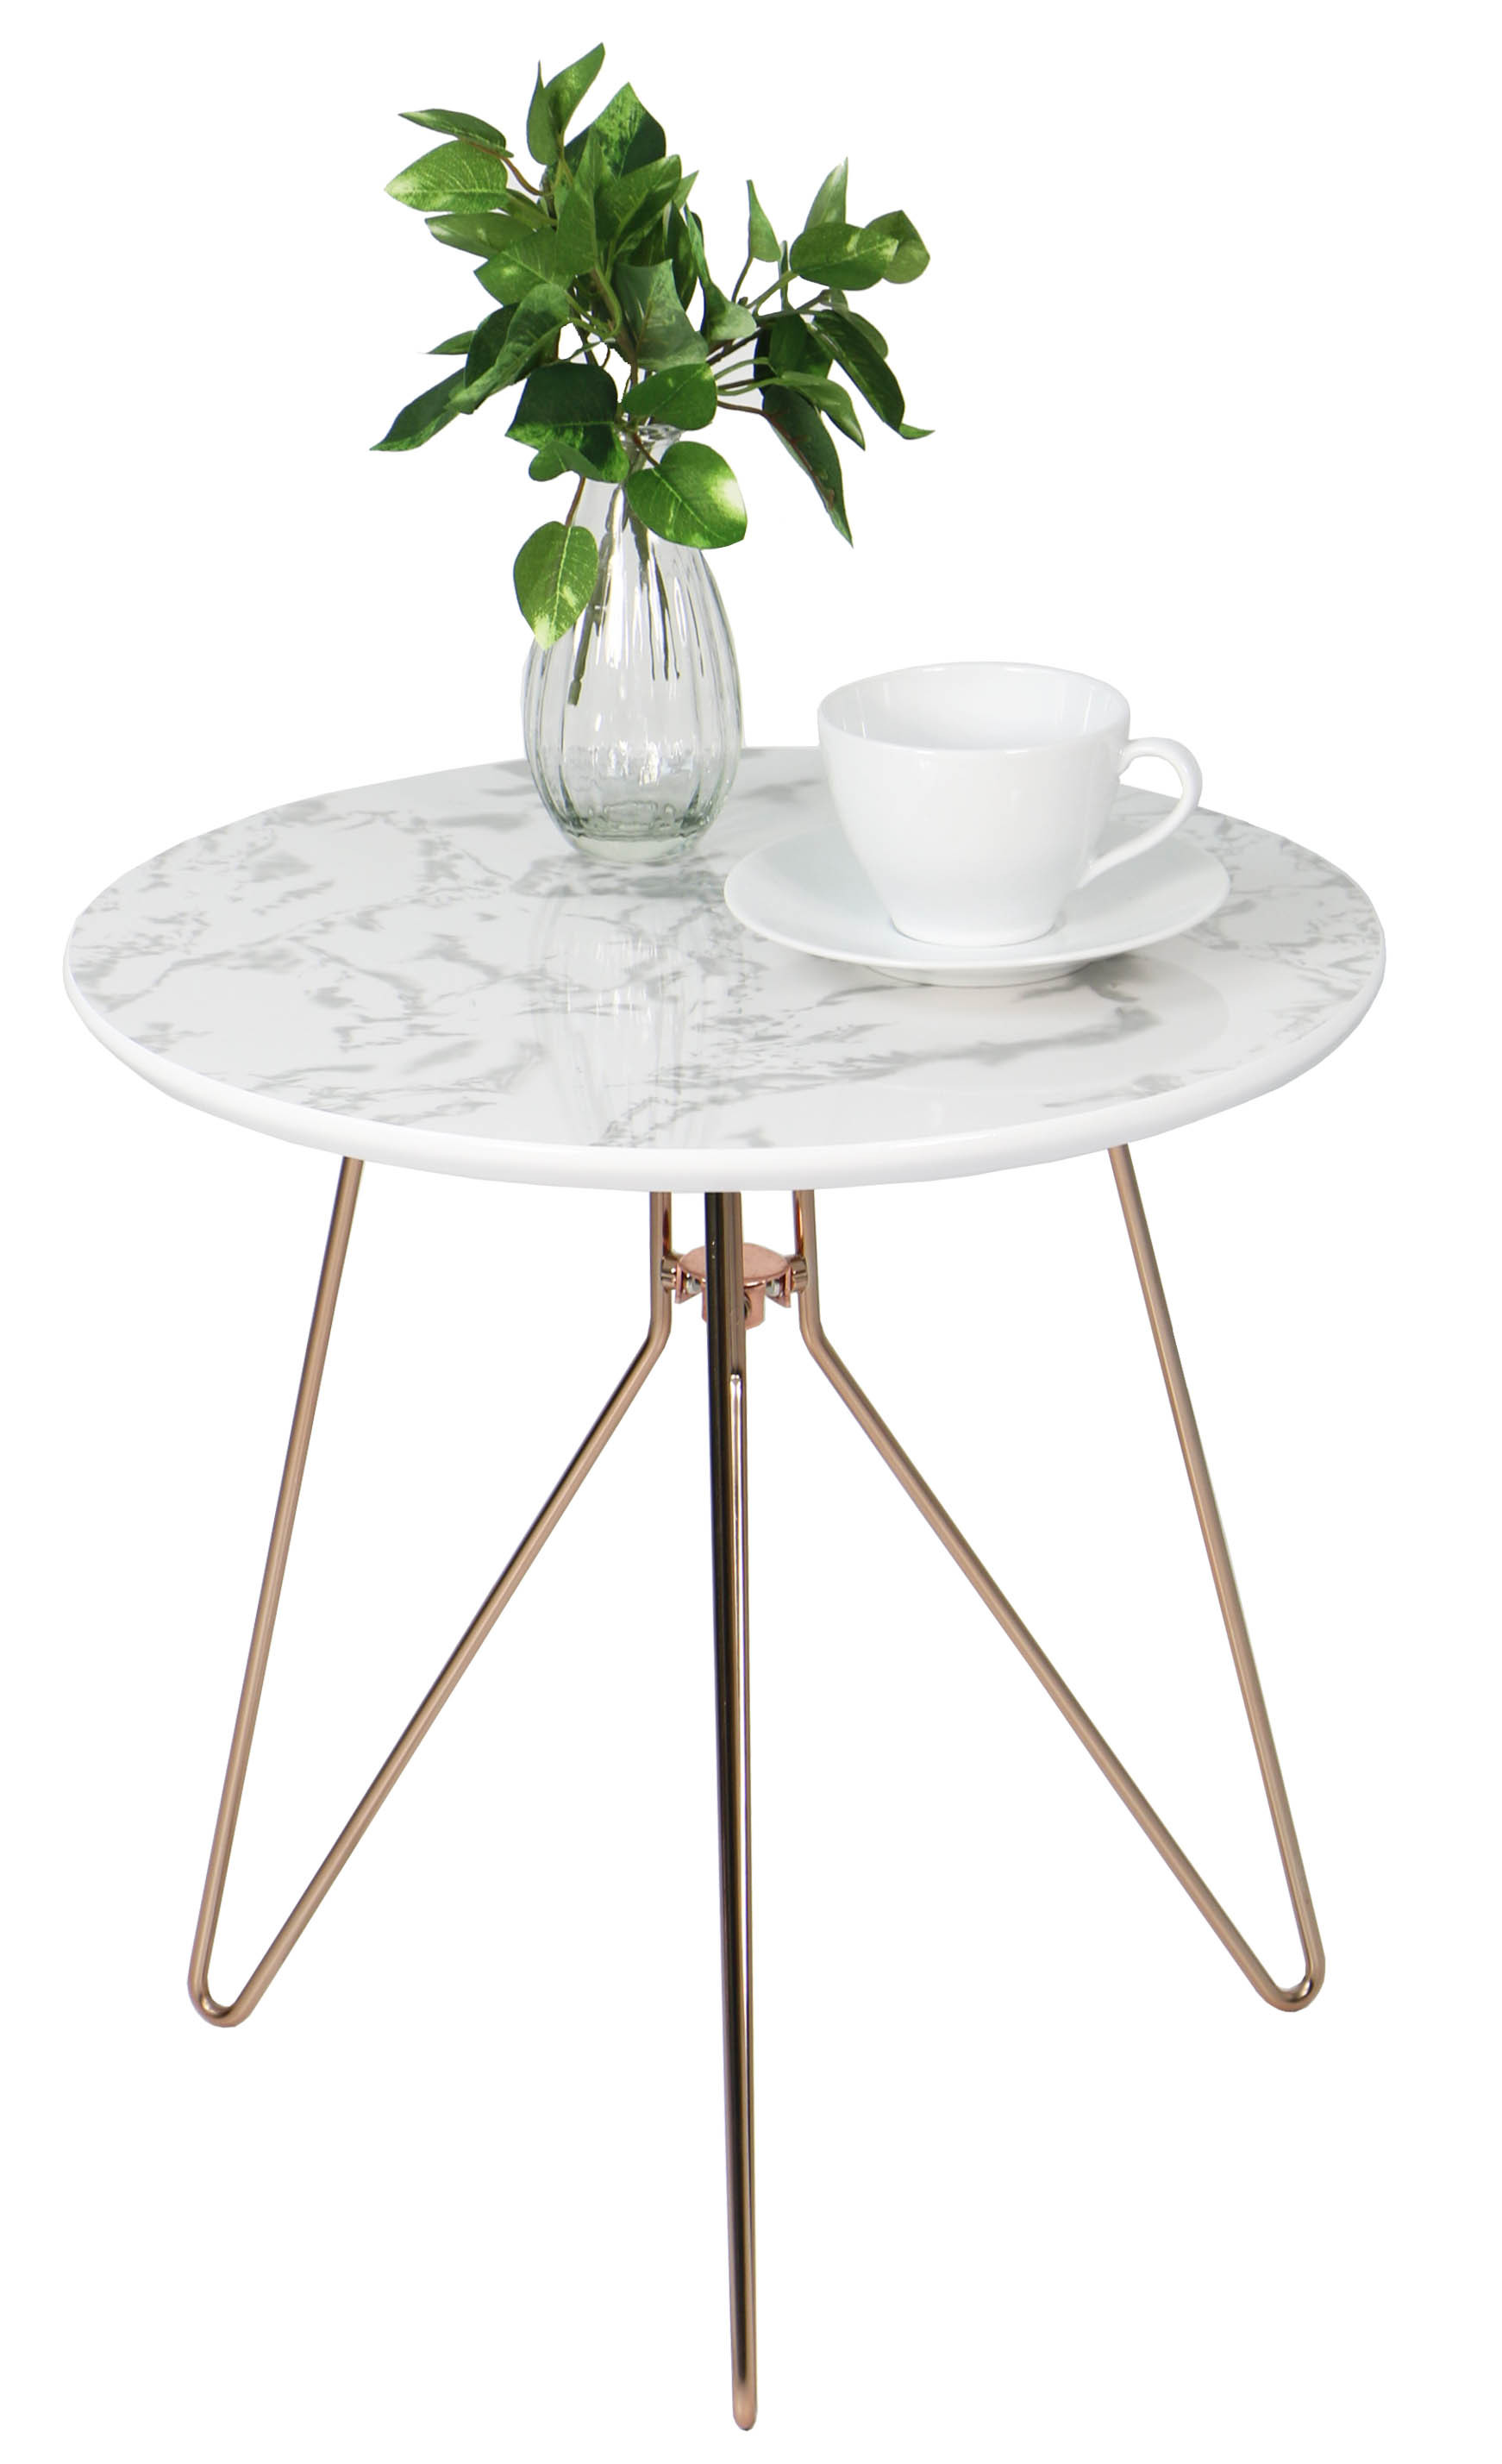 Alegro regular table coffee tables living room for Coffee tables singapore